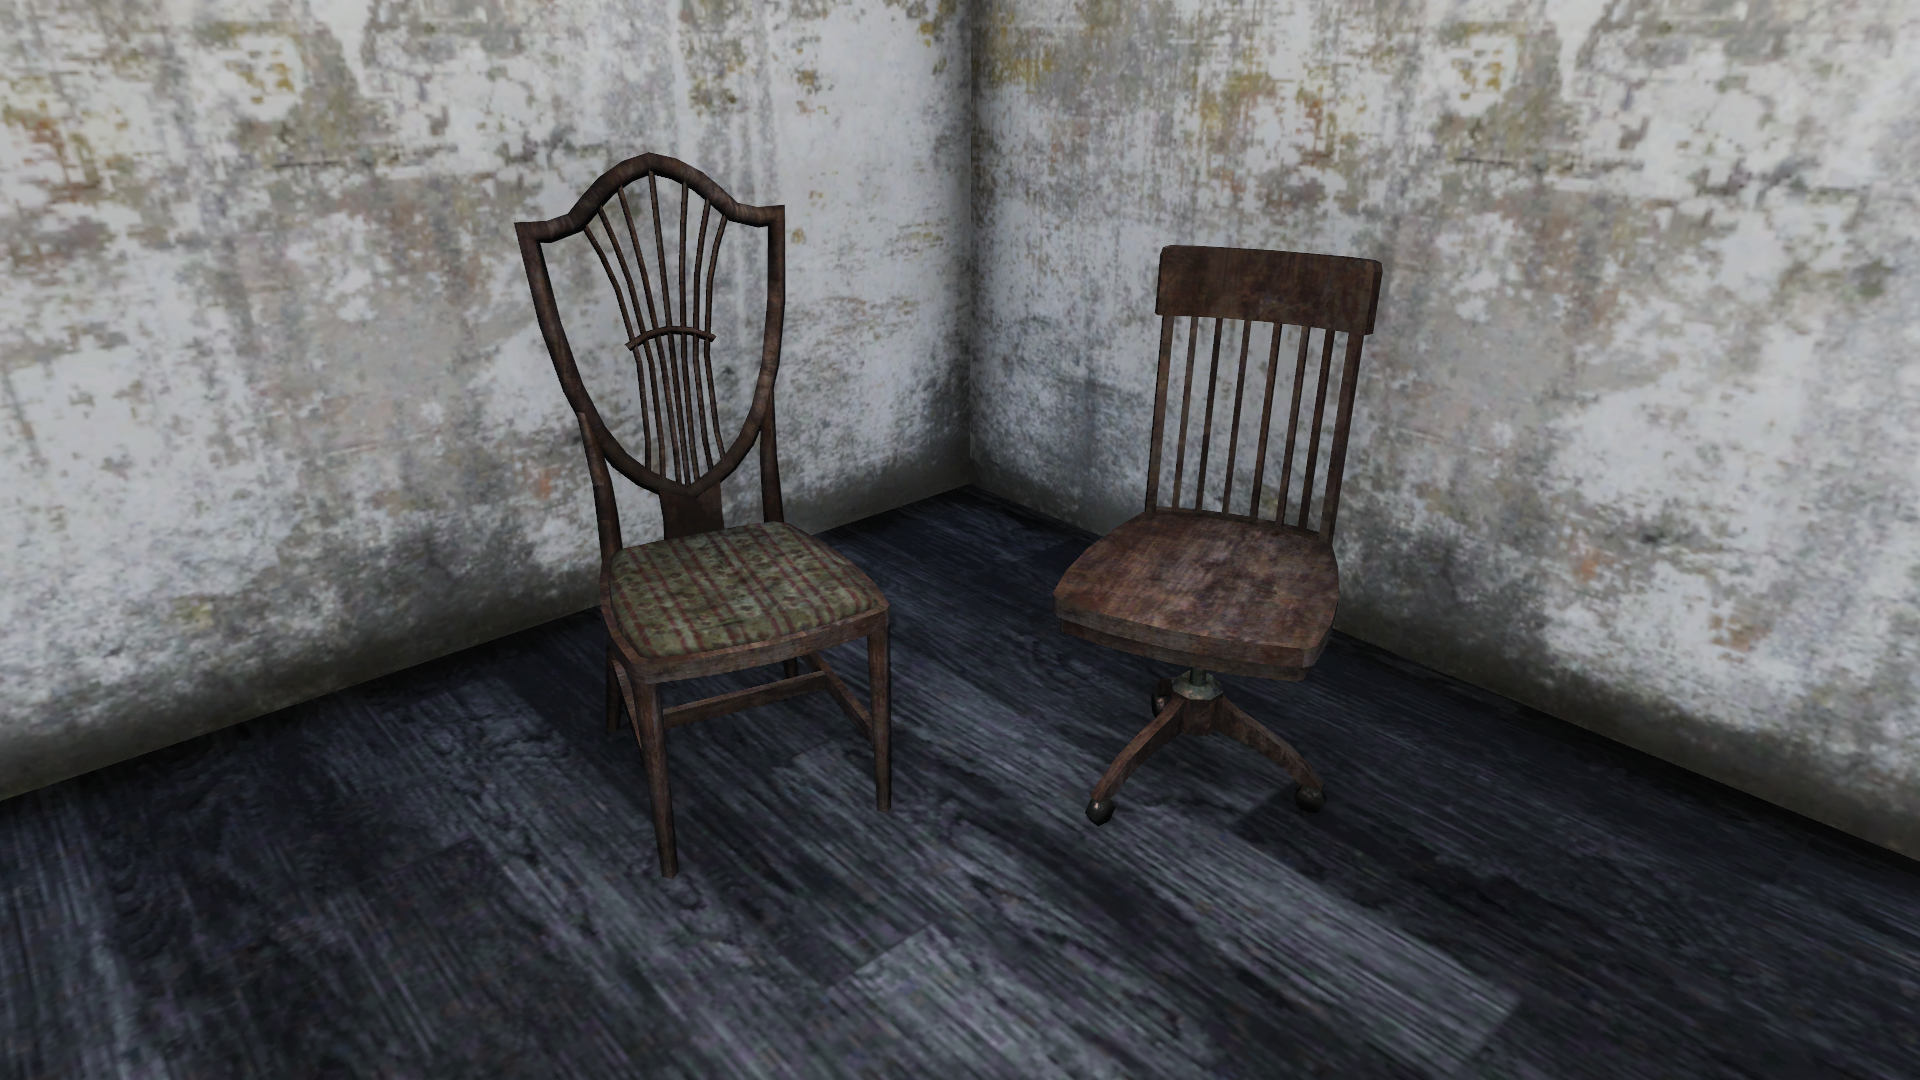 Plan Antique Wooden Chairs Fallout Wiki Fandom Powered By Wikia